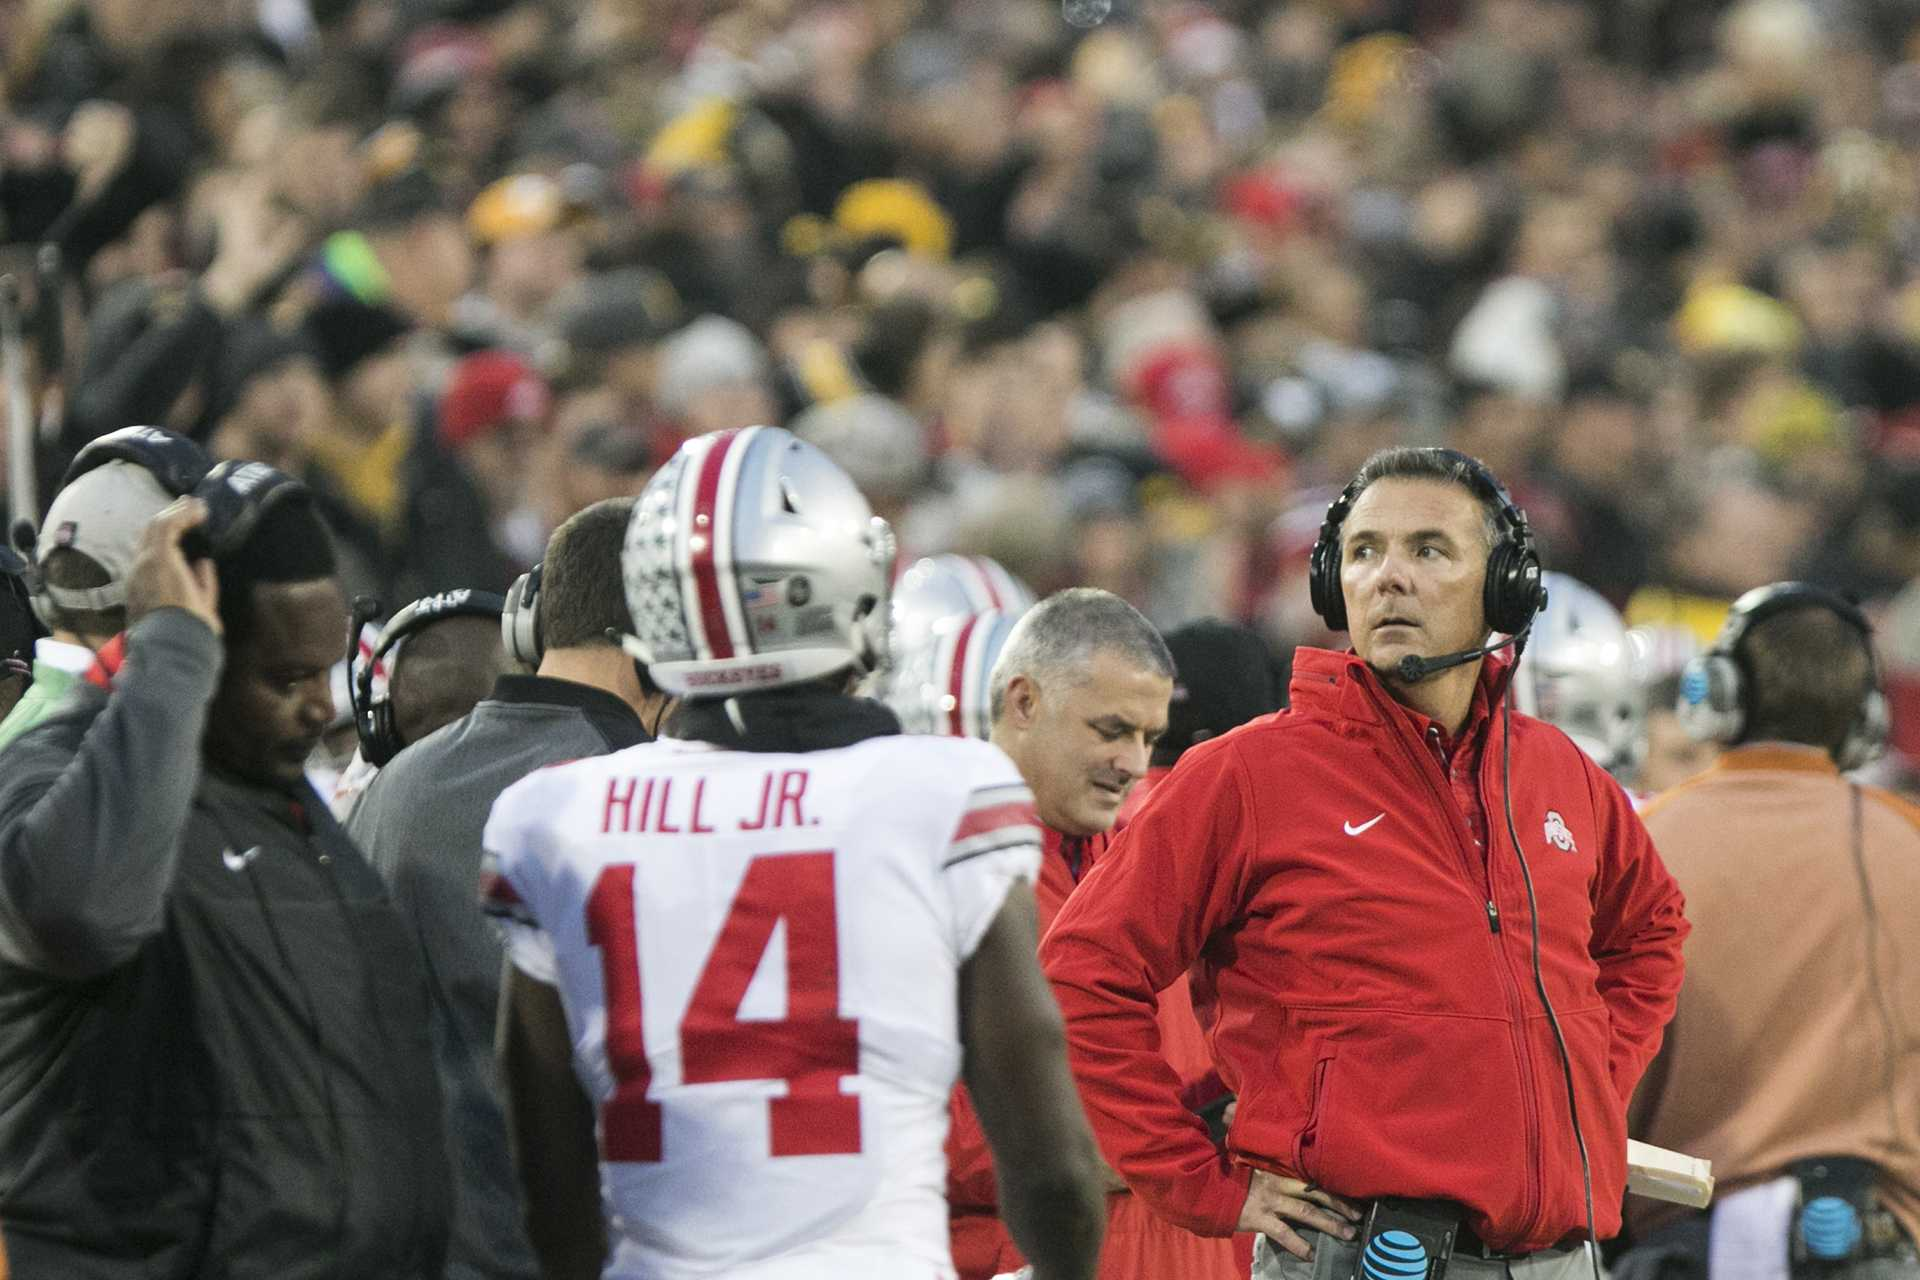 Ohio State head coach Urban Meyer looks to the scoreboard during the Iowa/Ohio State football game in Kinnick Stadium on Saturday, Nov. 4, 2017. The Hawkeyes defeated the Buckeyes in a storming fashion, 55-24. (Joseph Cress/The Daily Iowan)